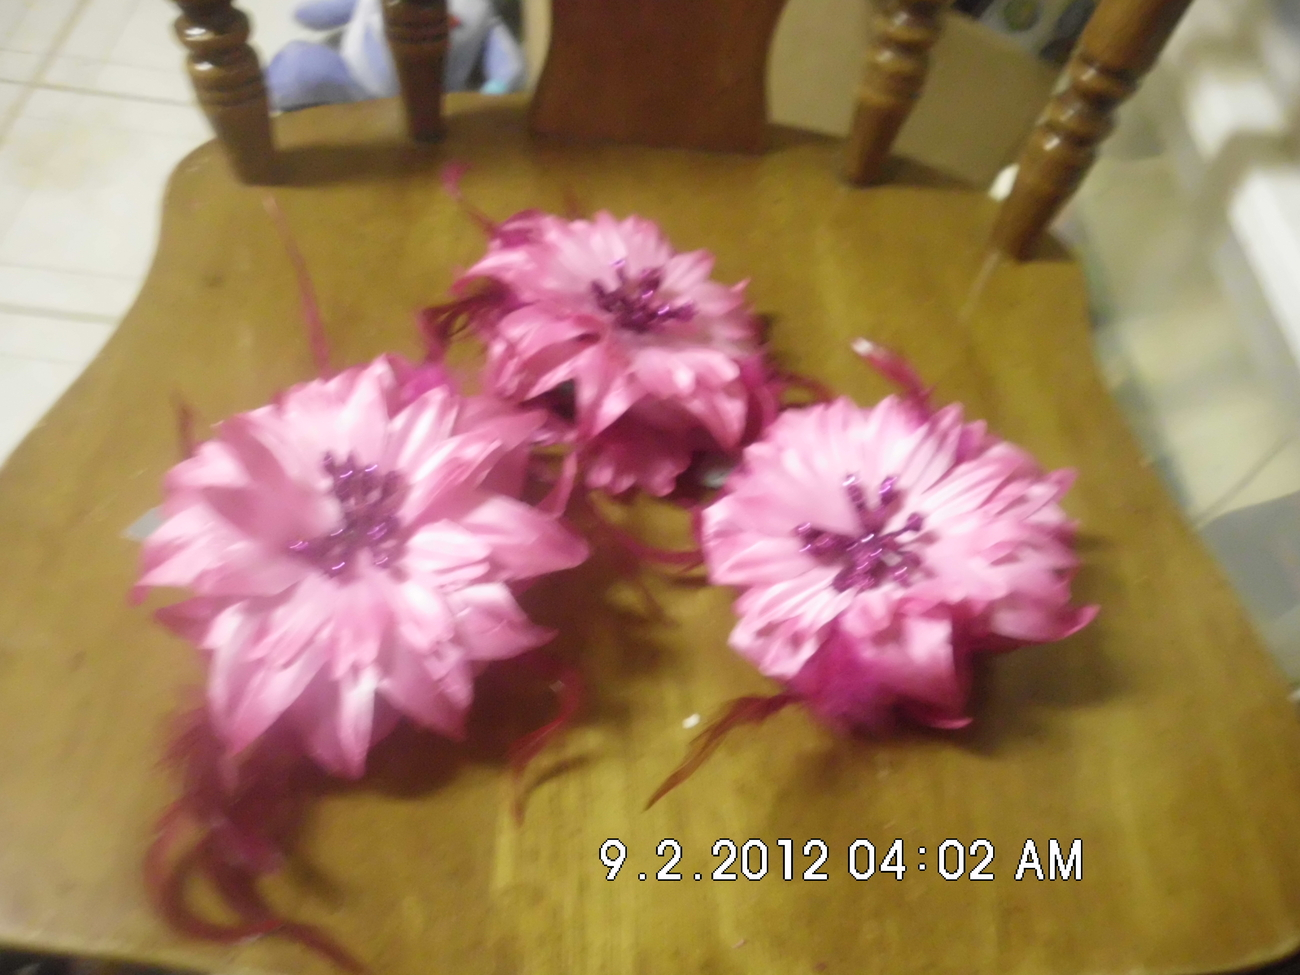 Lot of 3 Hairclips With Large Pink Flowers and Feathers